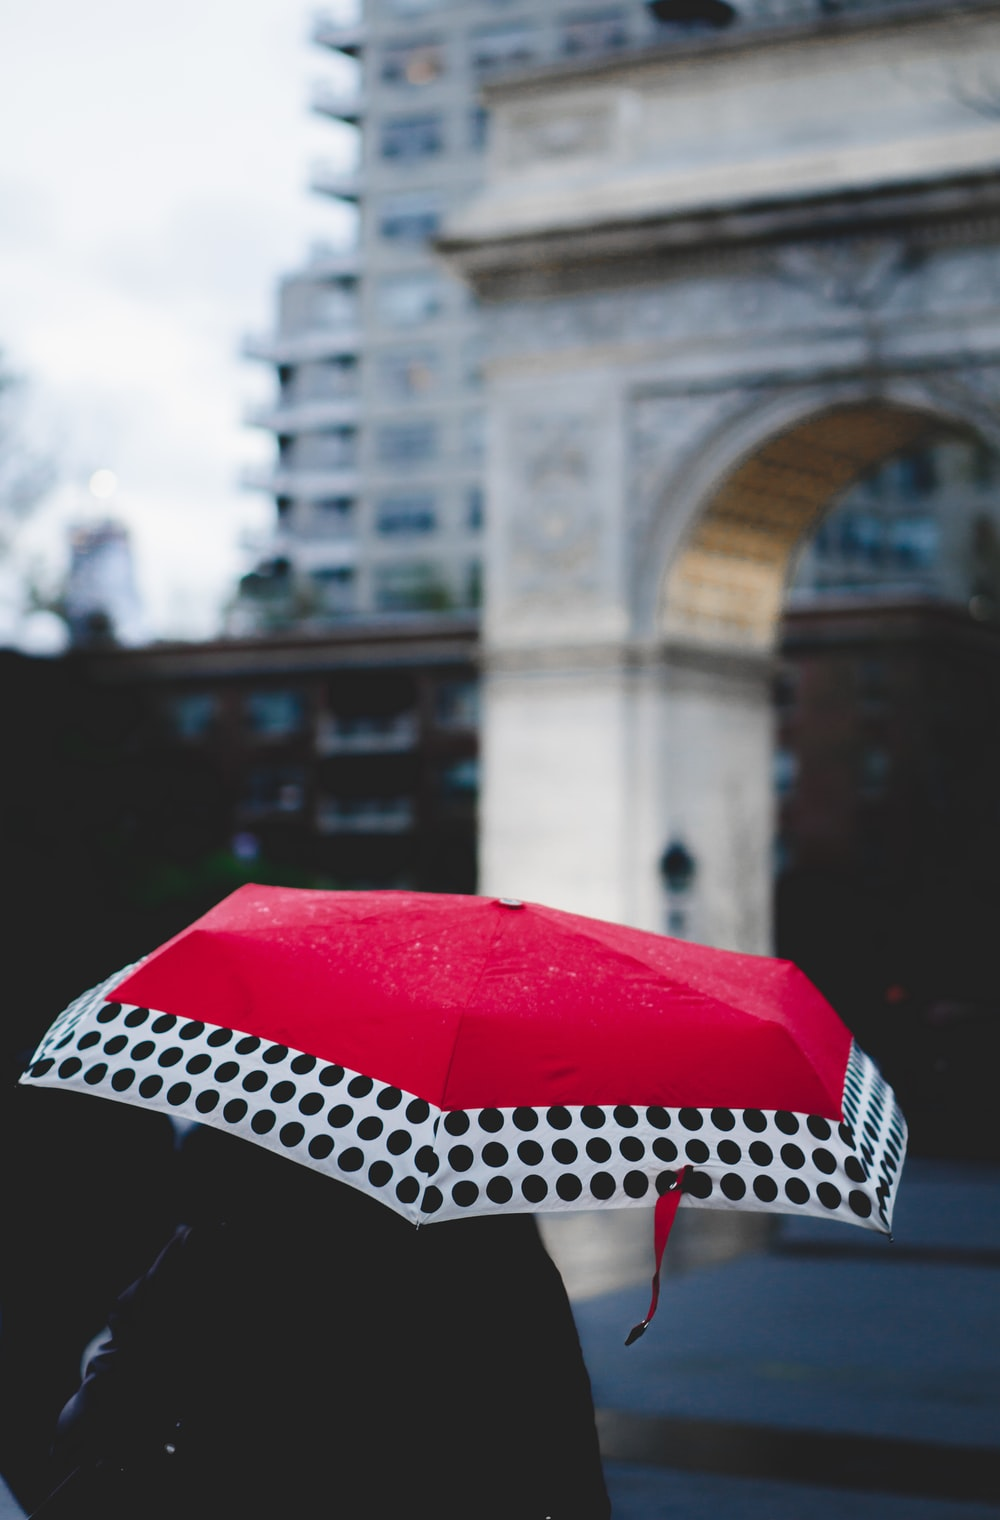 person under red and white umbrella walking near building